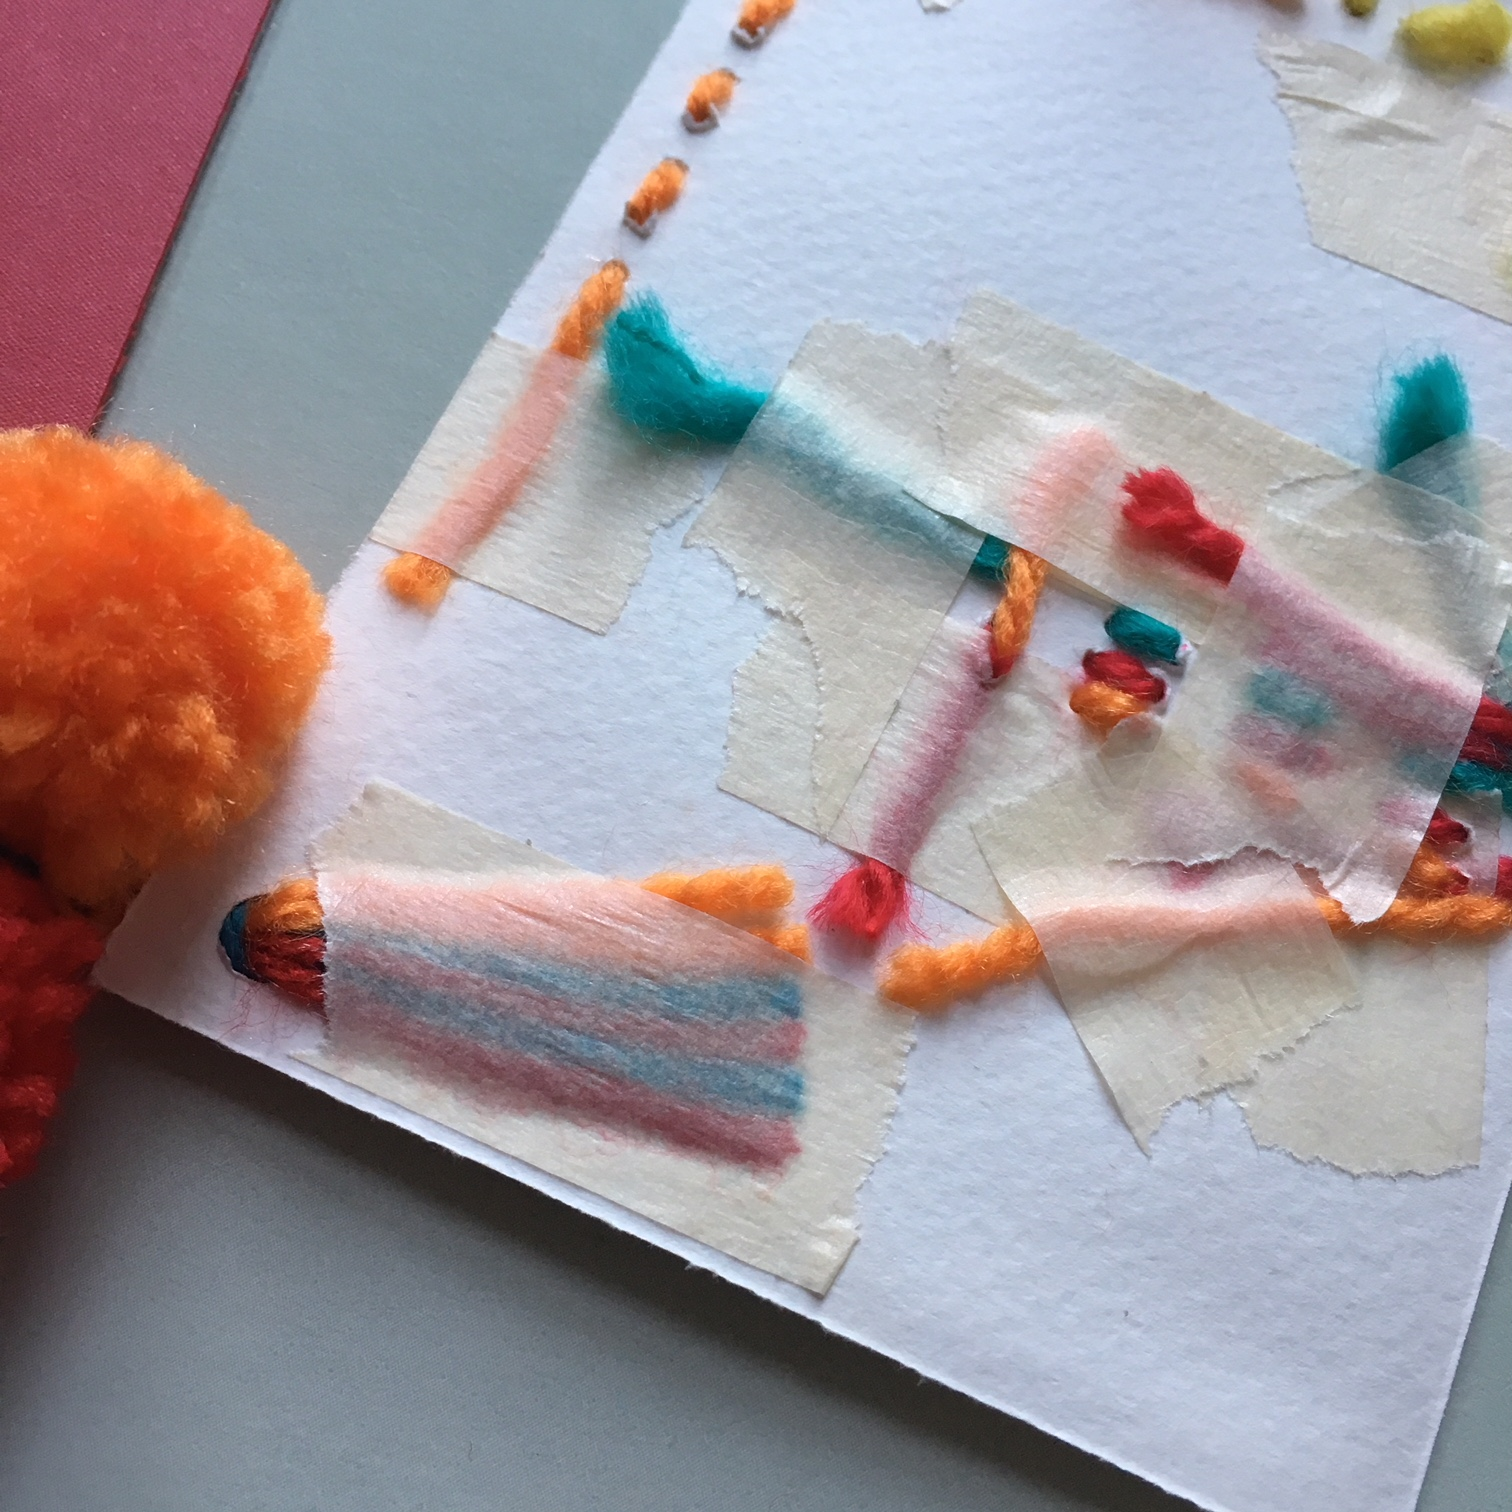 the back of the hippie style greeting card - every wool end is carefully glued and fixed with flue and paper tape